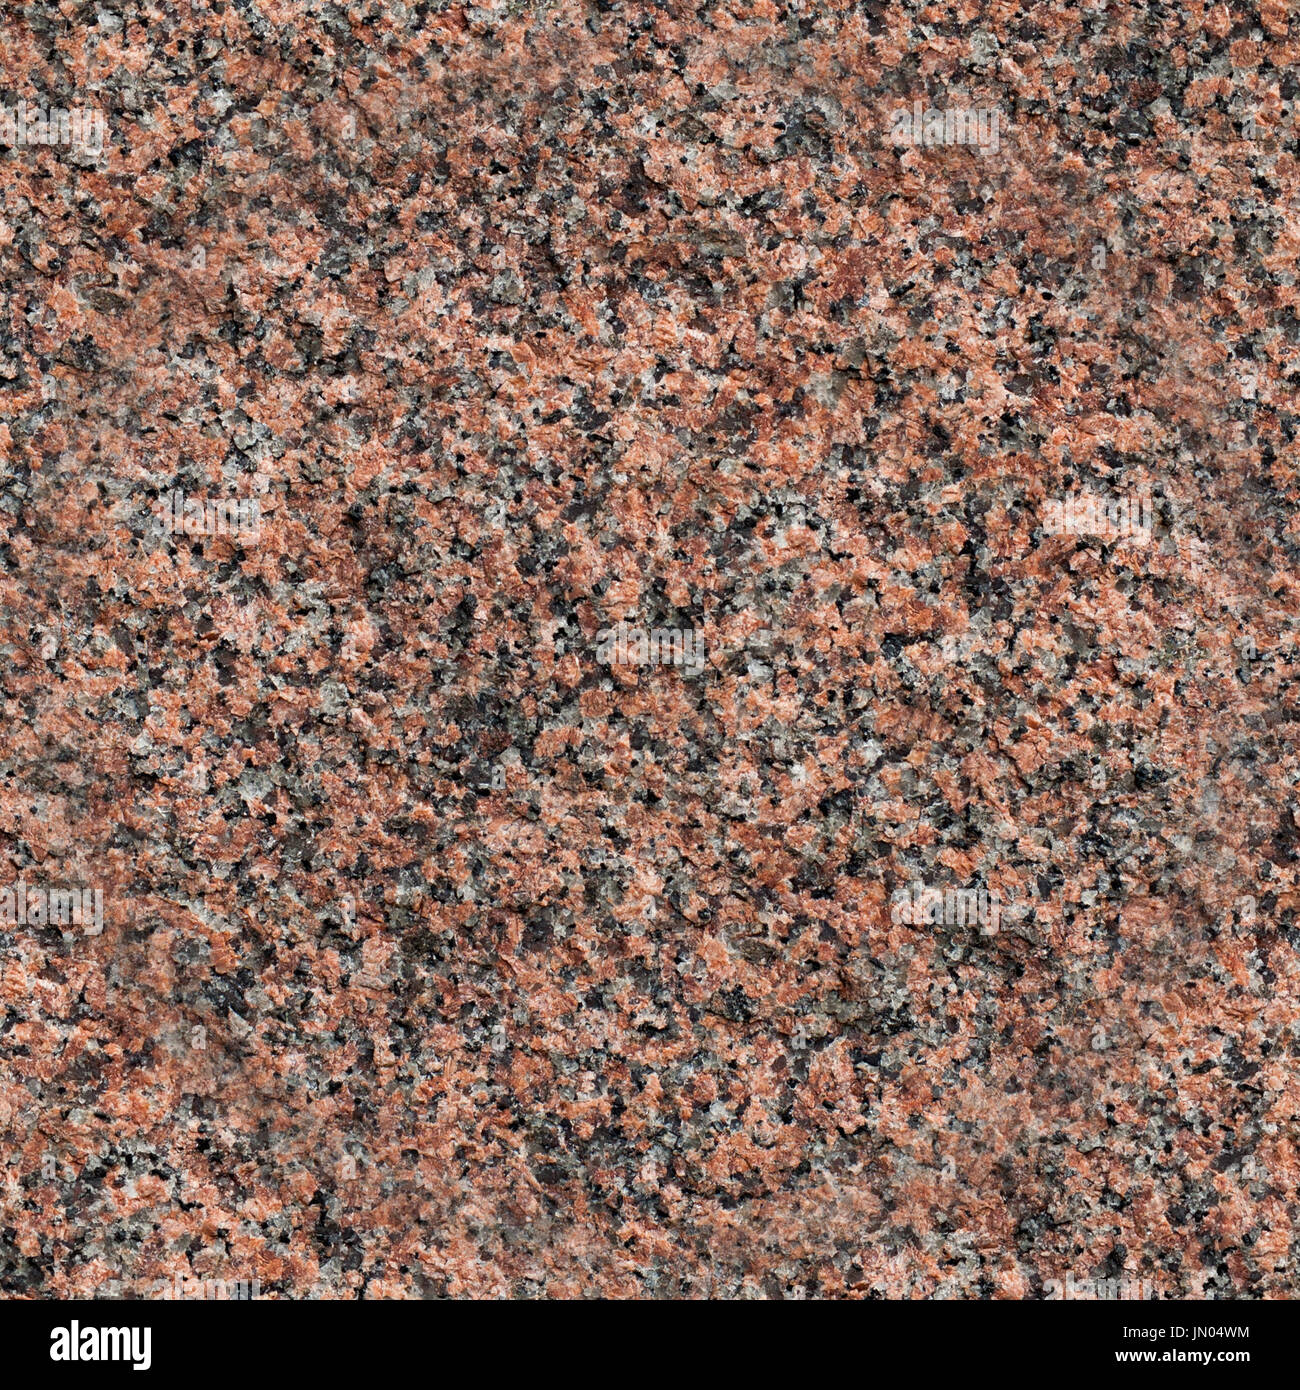 Granite Texture Design Brown Seamless High Resolution Stock Photography And Images Alamy